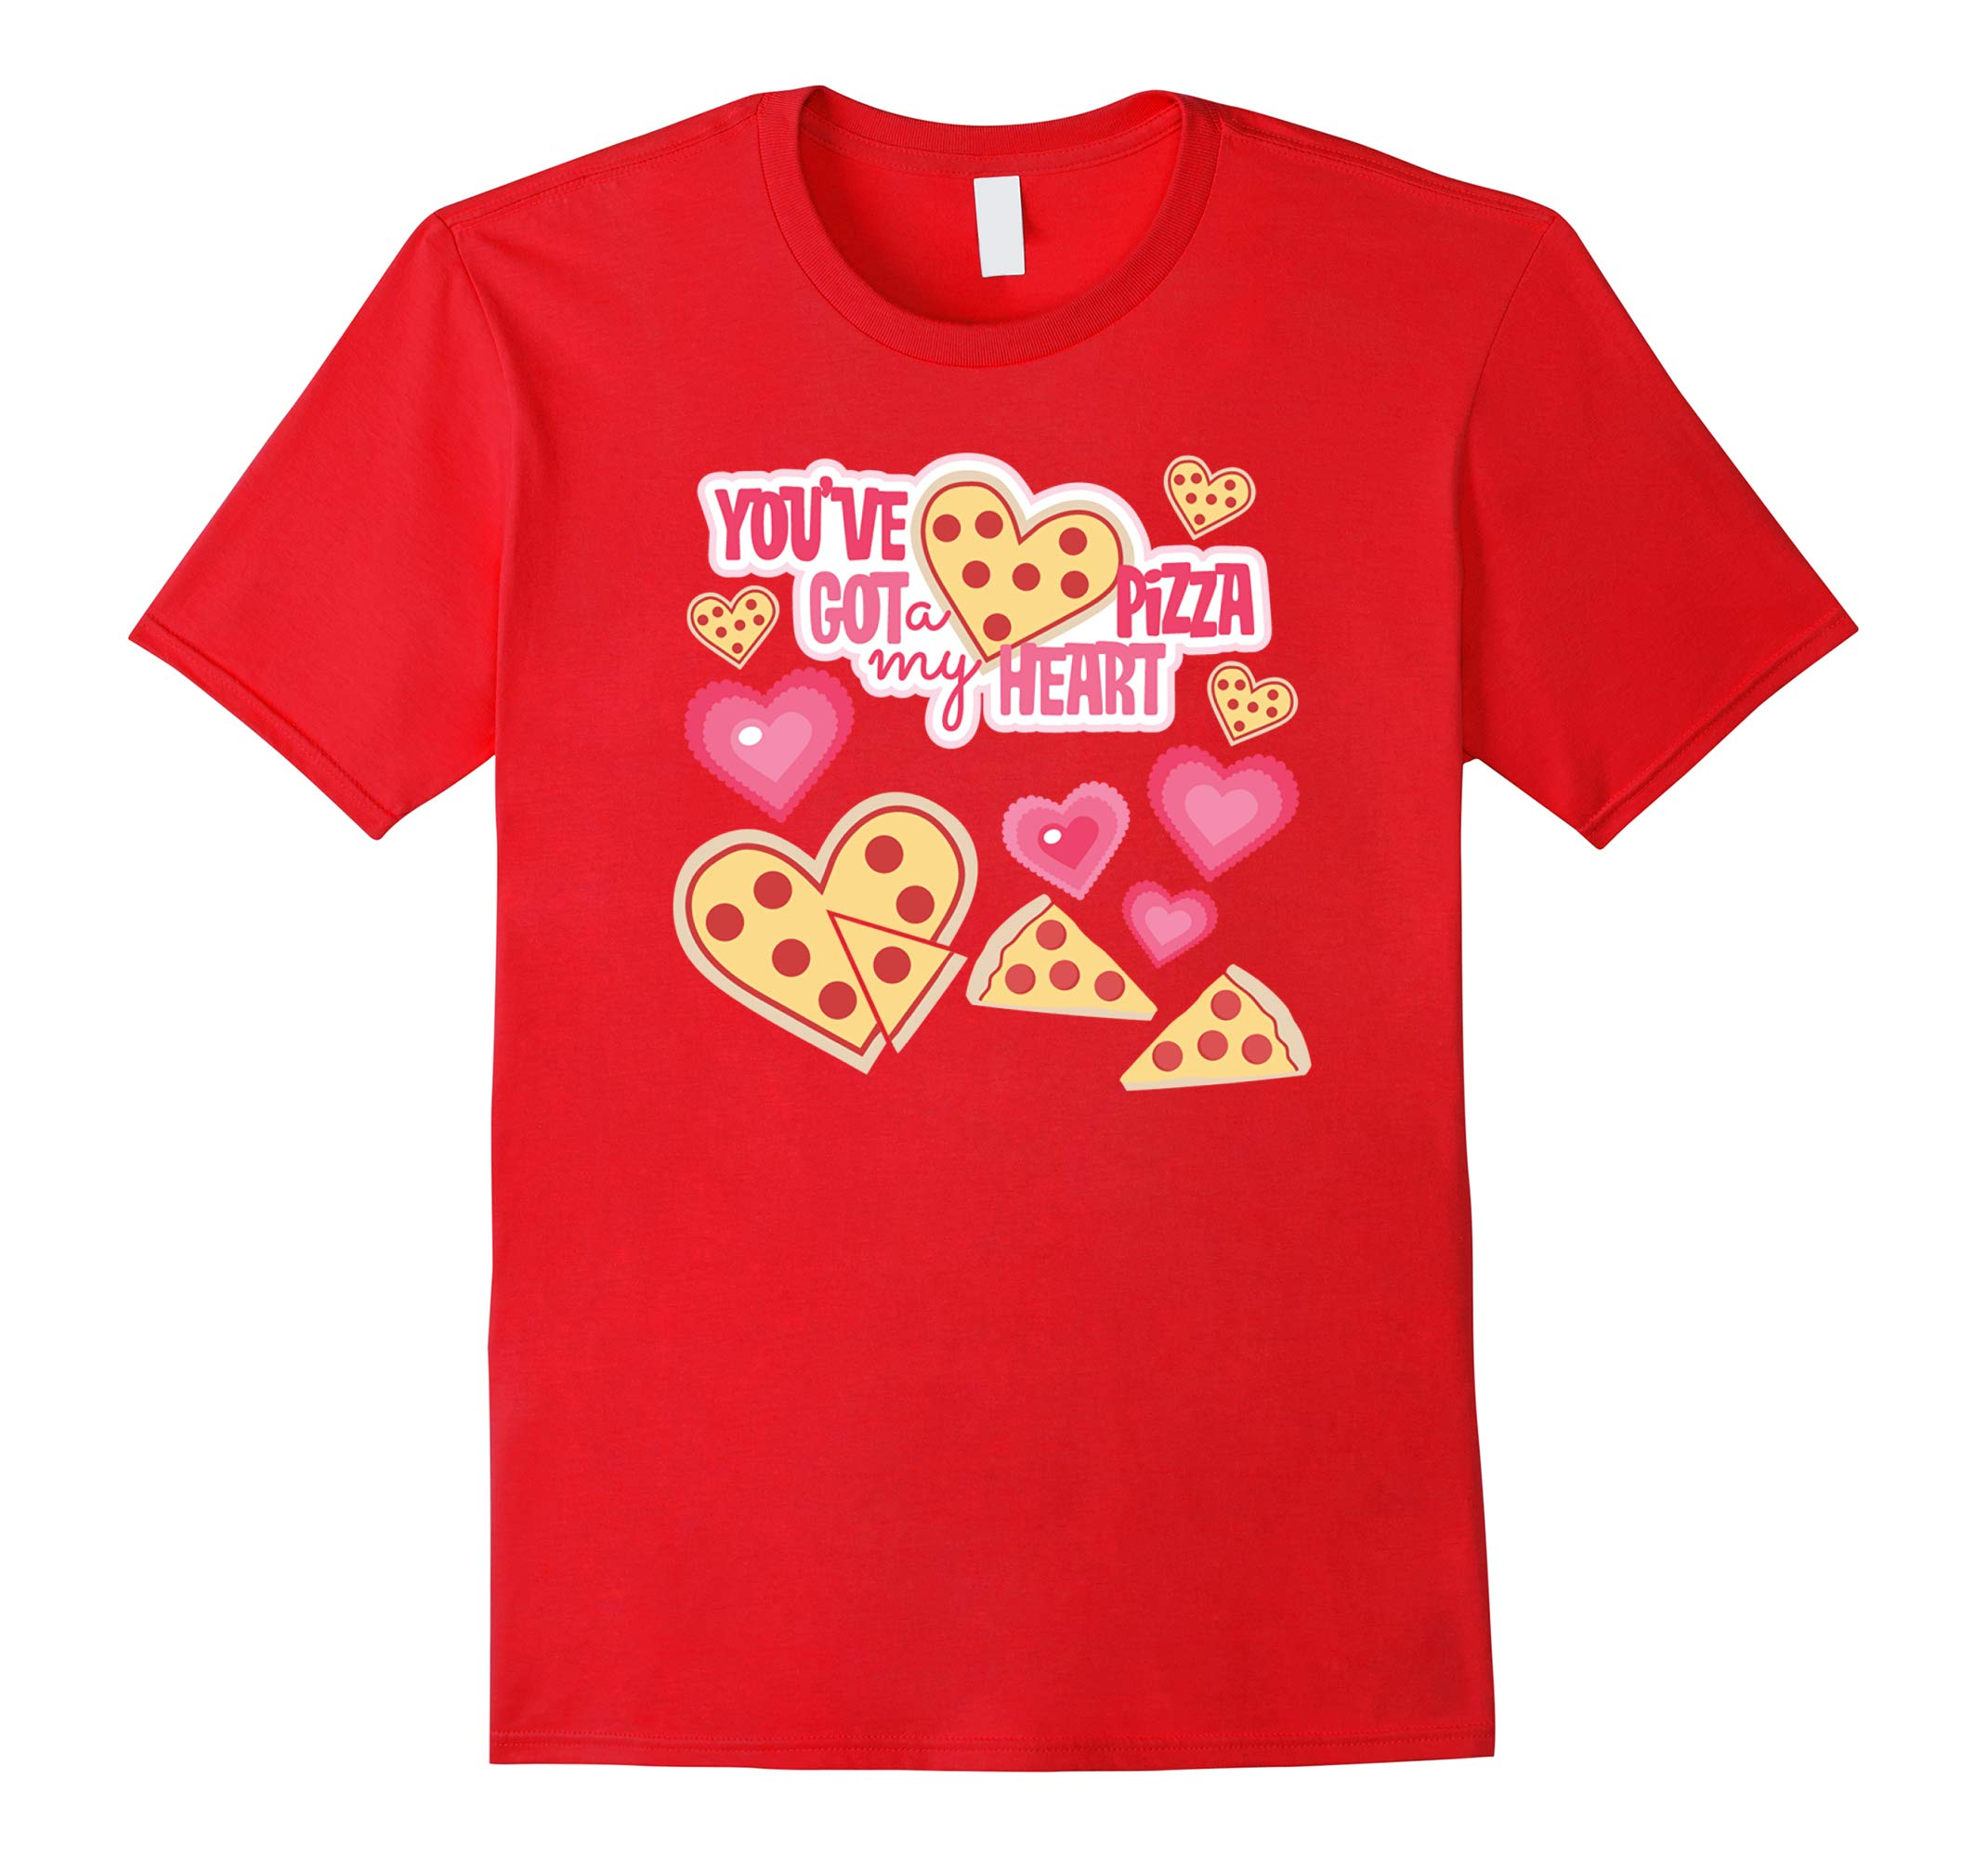 YOU'VE GOT A PIZZA MY HEART VALENTINES DAY T-SHIRT-RT